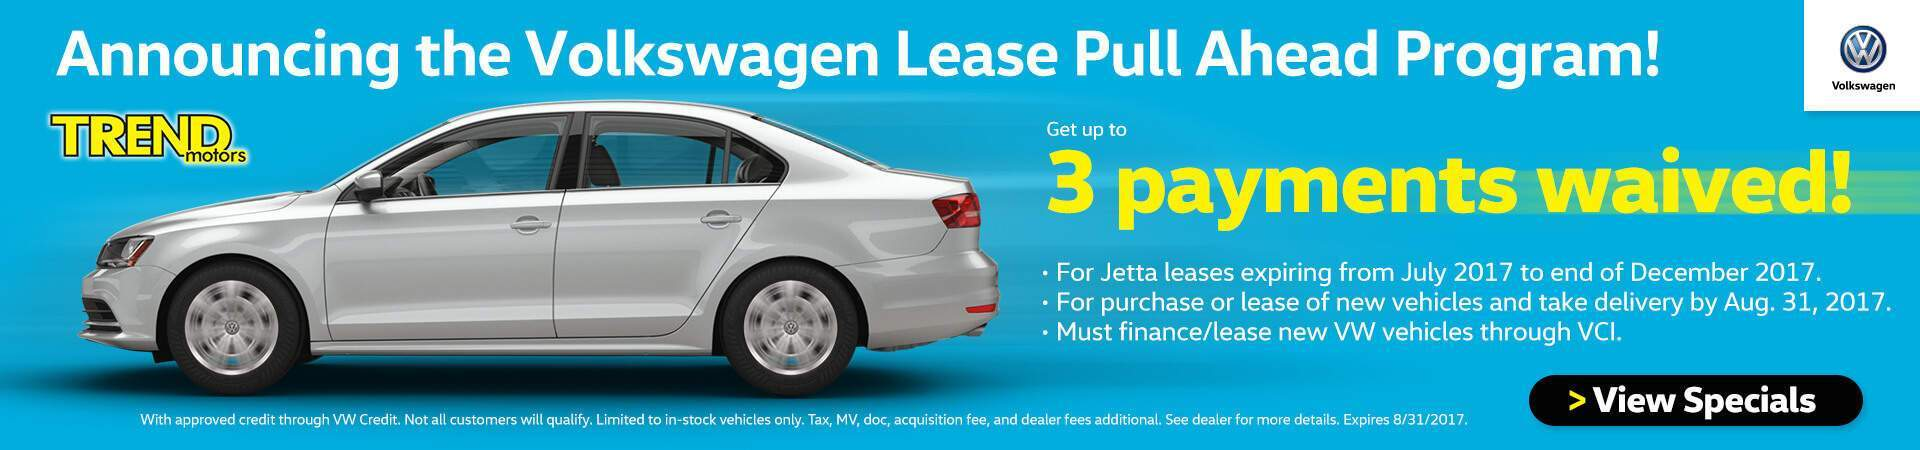 VW Lease Pull Ahead